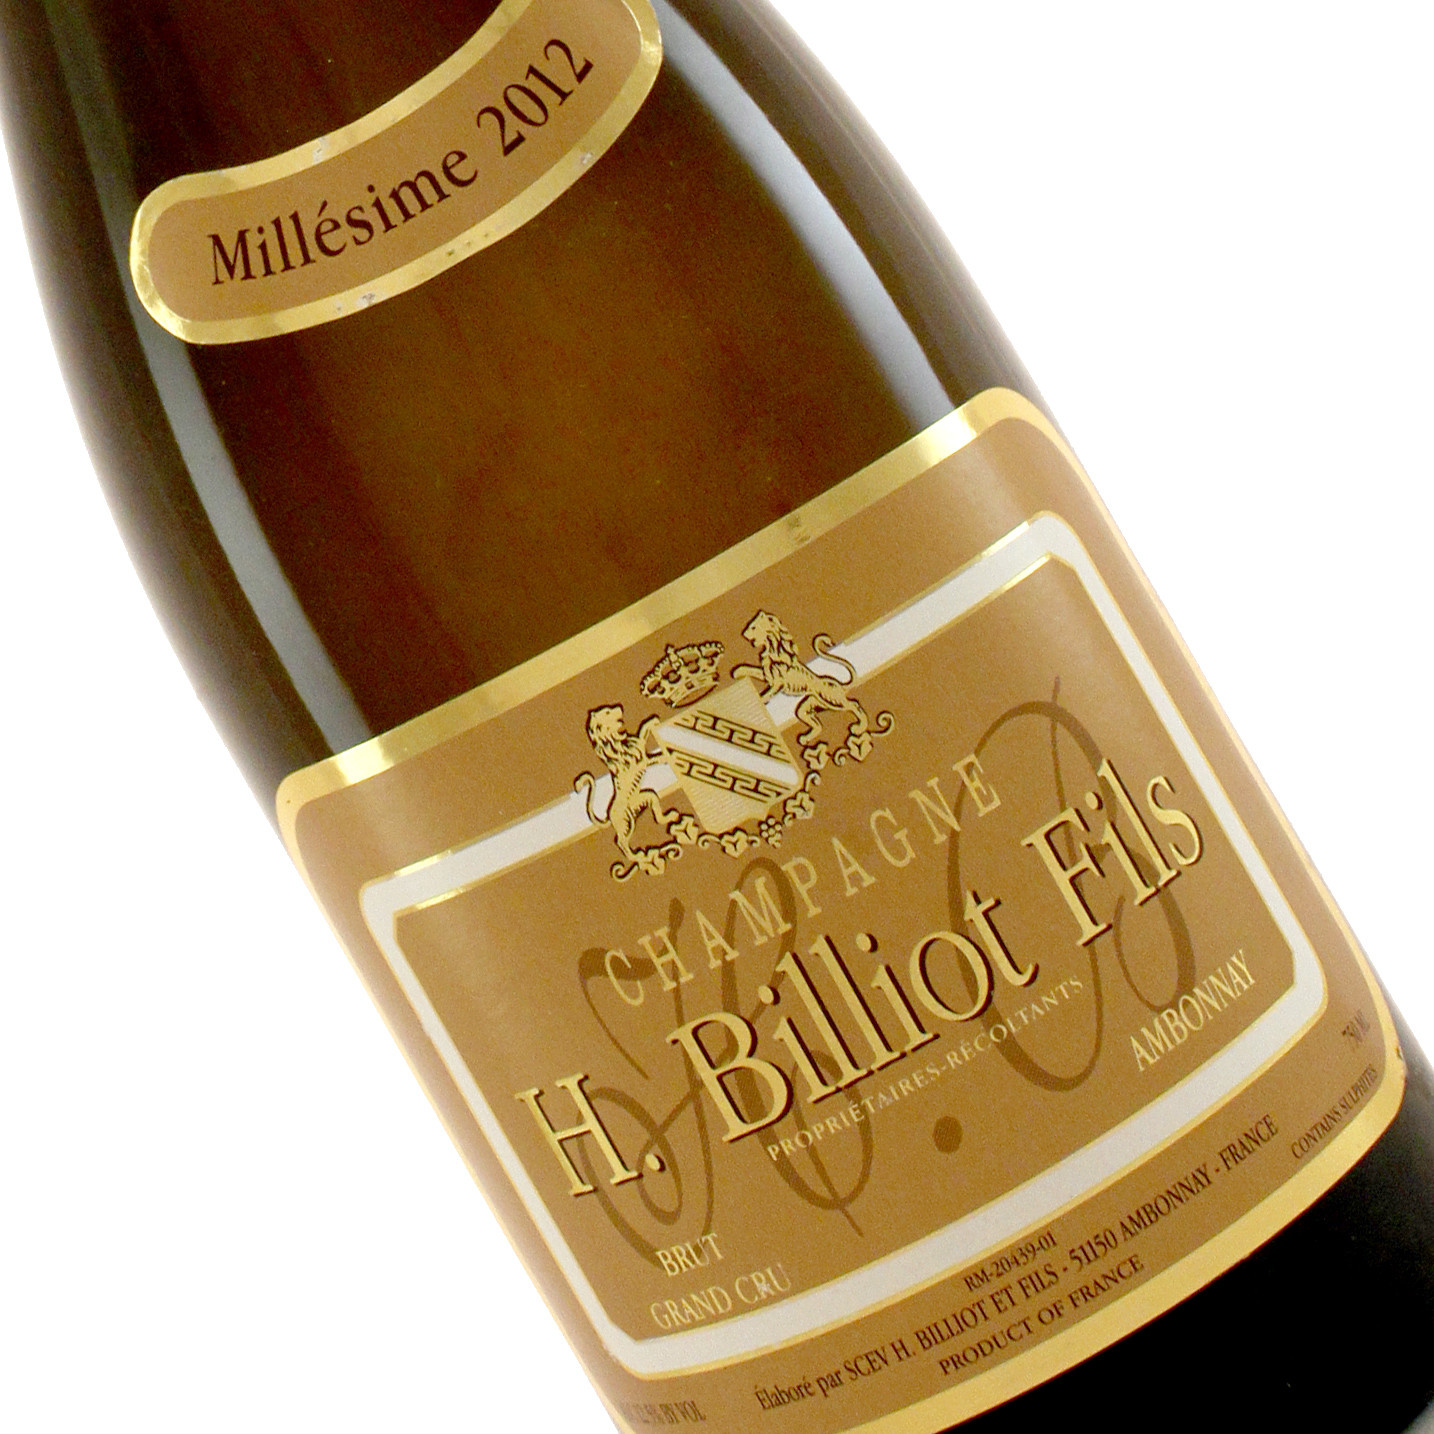 H. Billiot Fils 2012 Brut Grand Cru Champagne